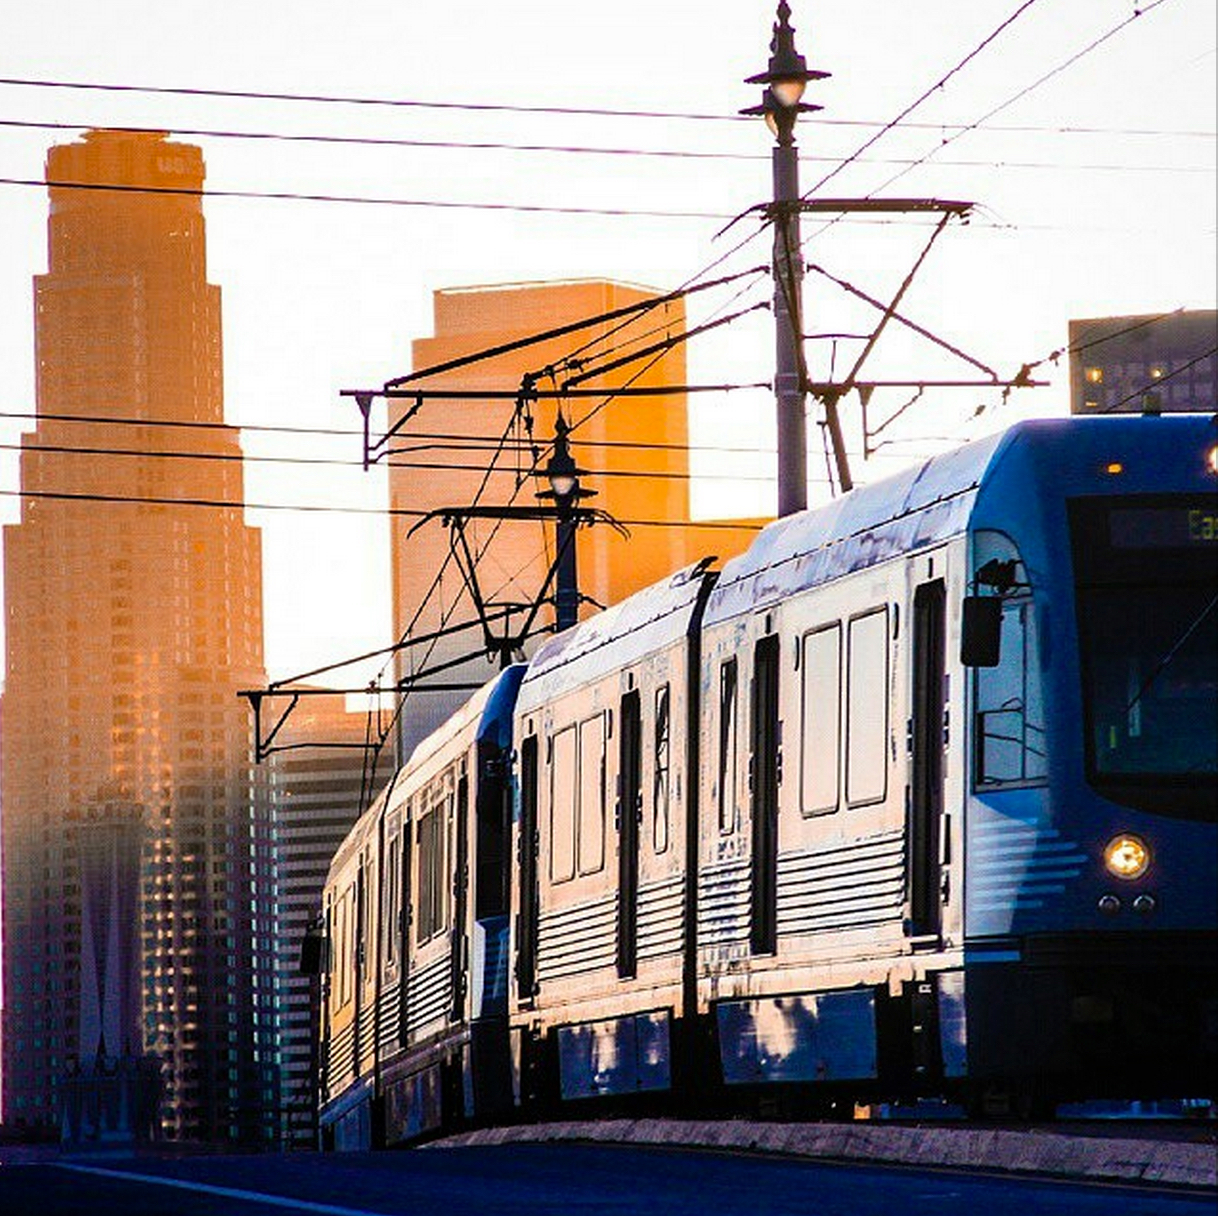 ART OF TRANSIT: Gold Line train leaving downtown L.A. Photo from Instagram via @jperson111111